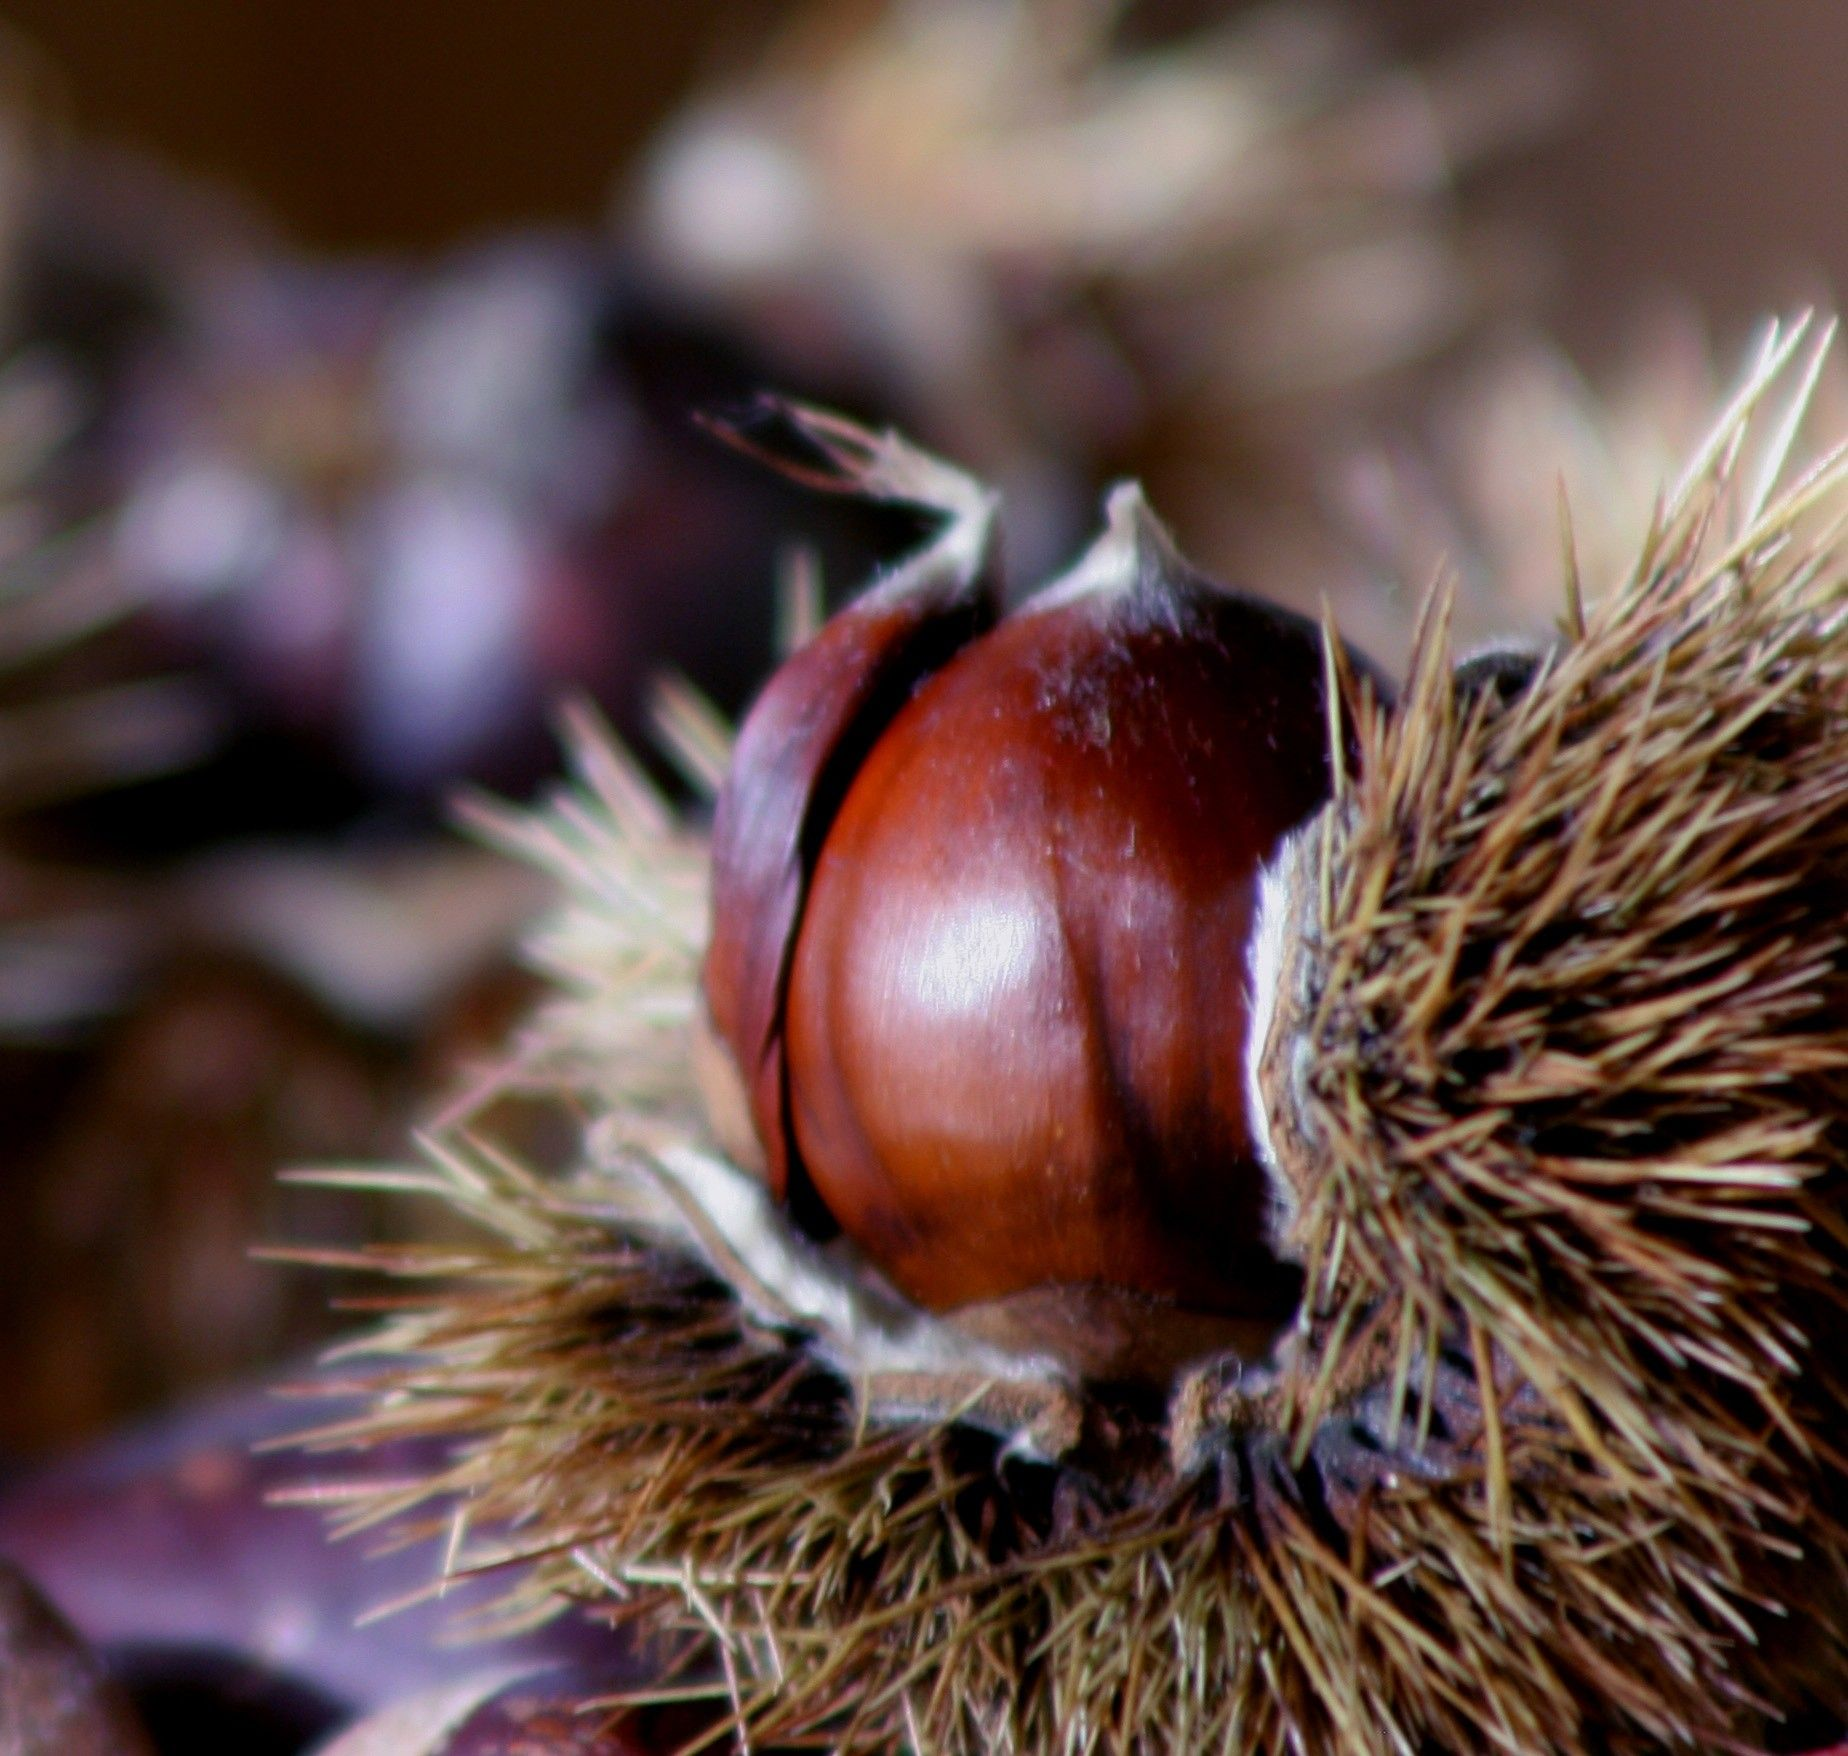 ... finding chestnuts on the ground